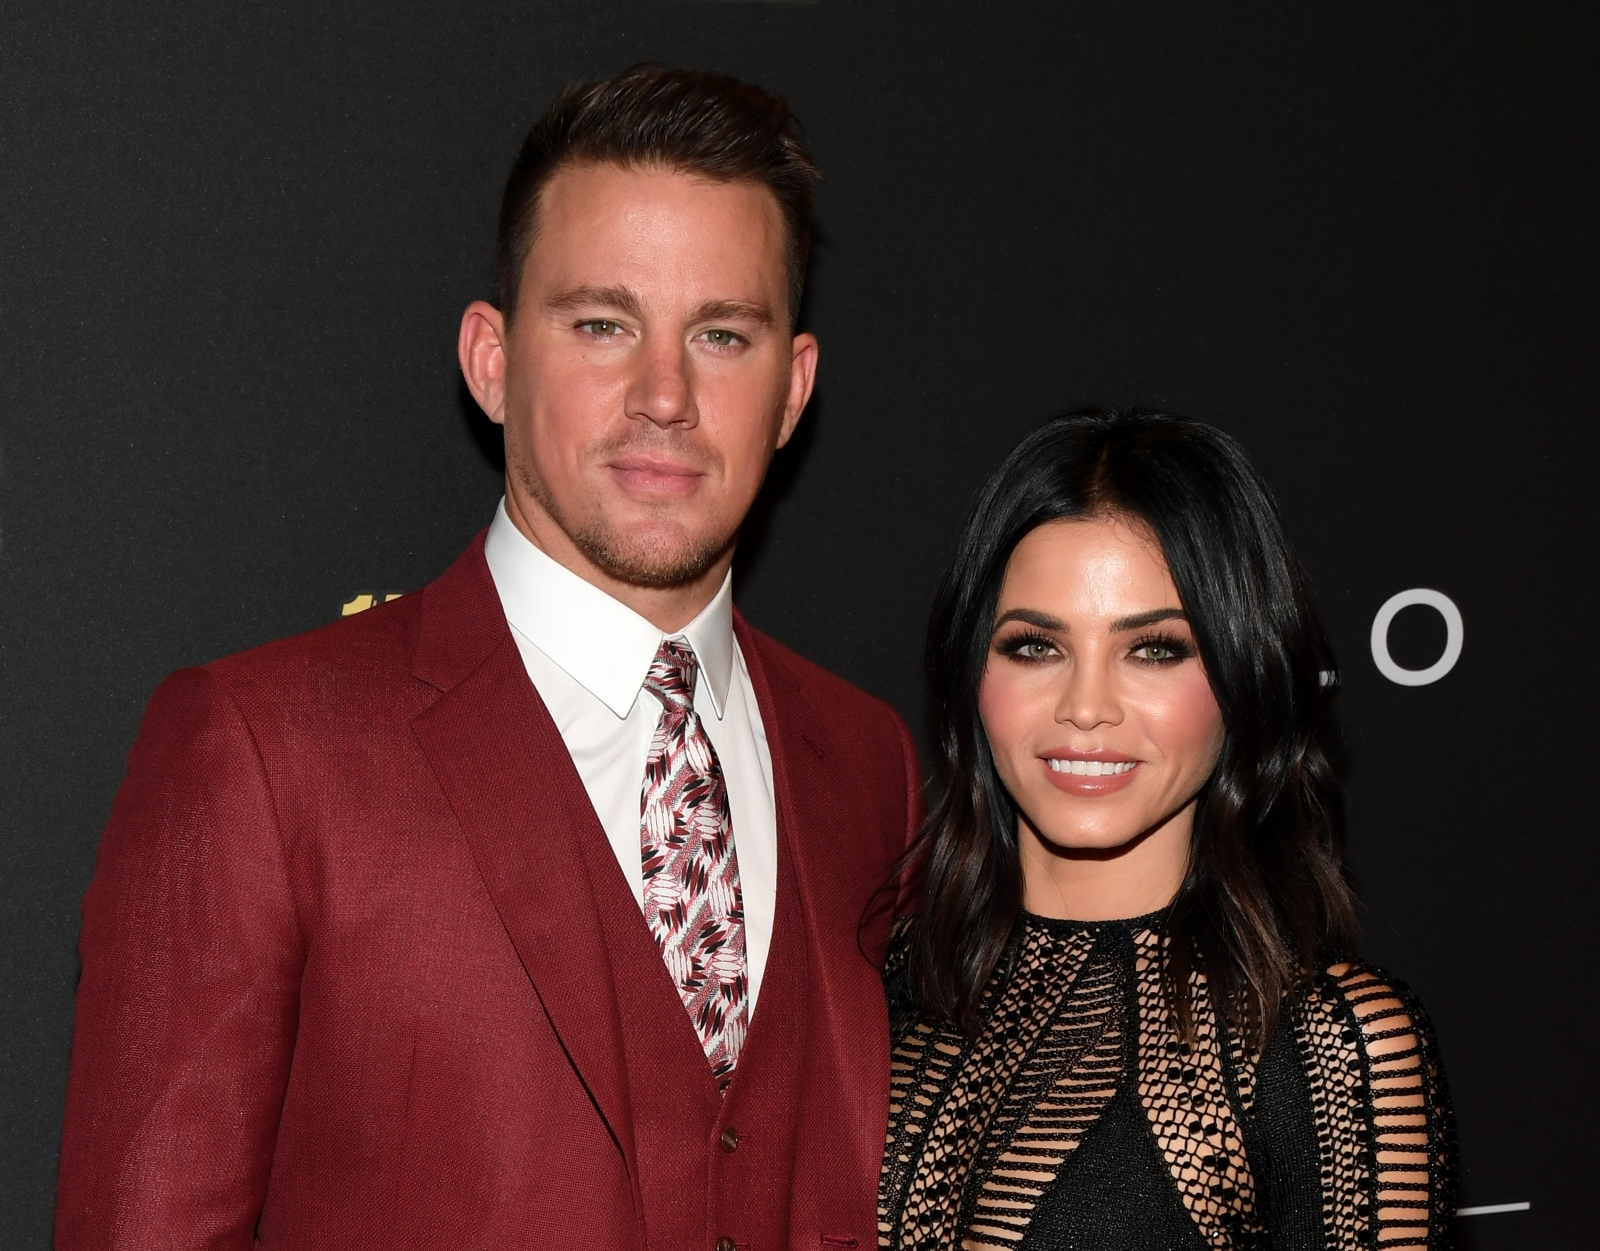 Channing Tatum's Daughter Doesn't Like His Step Up Movies